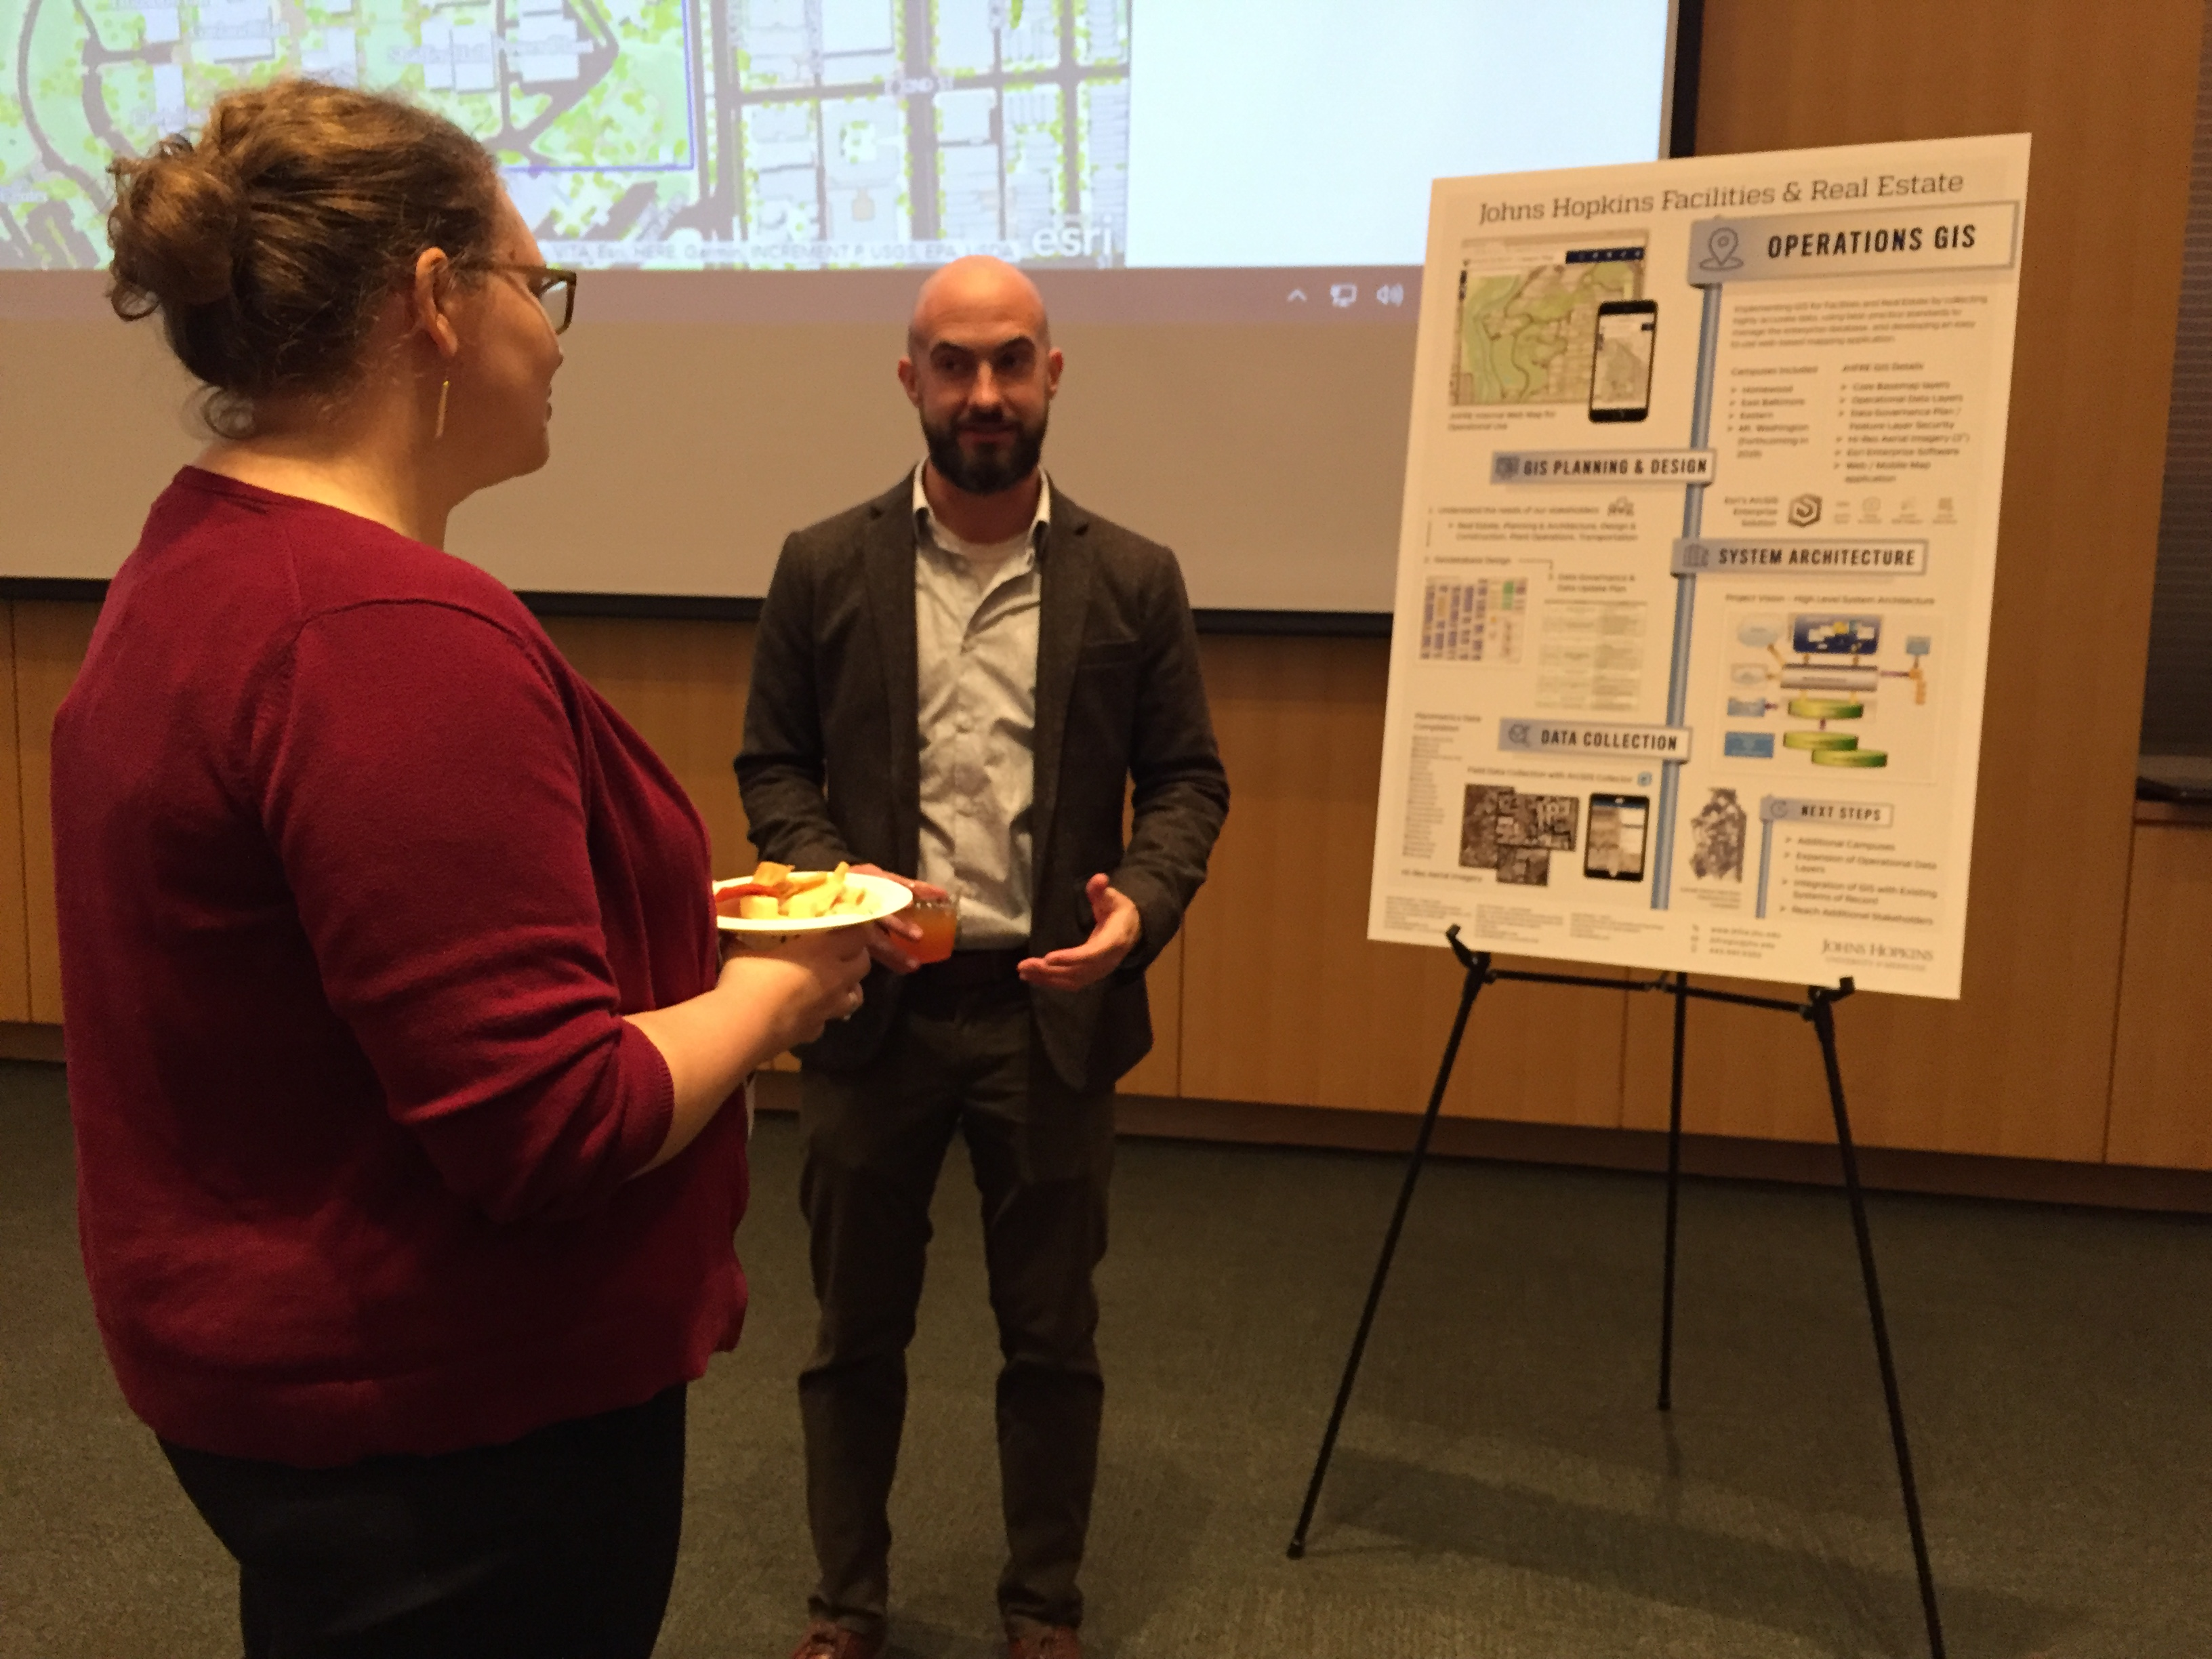 gis-day-explaining-poster